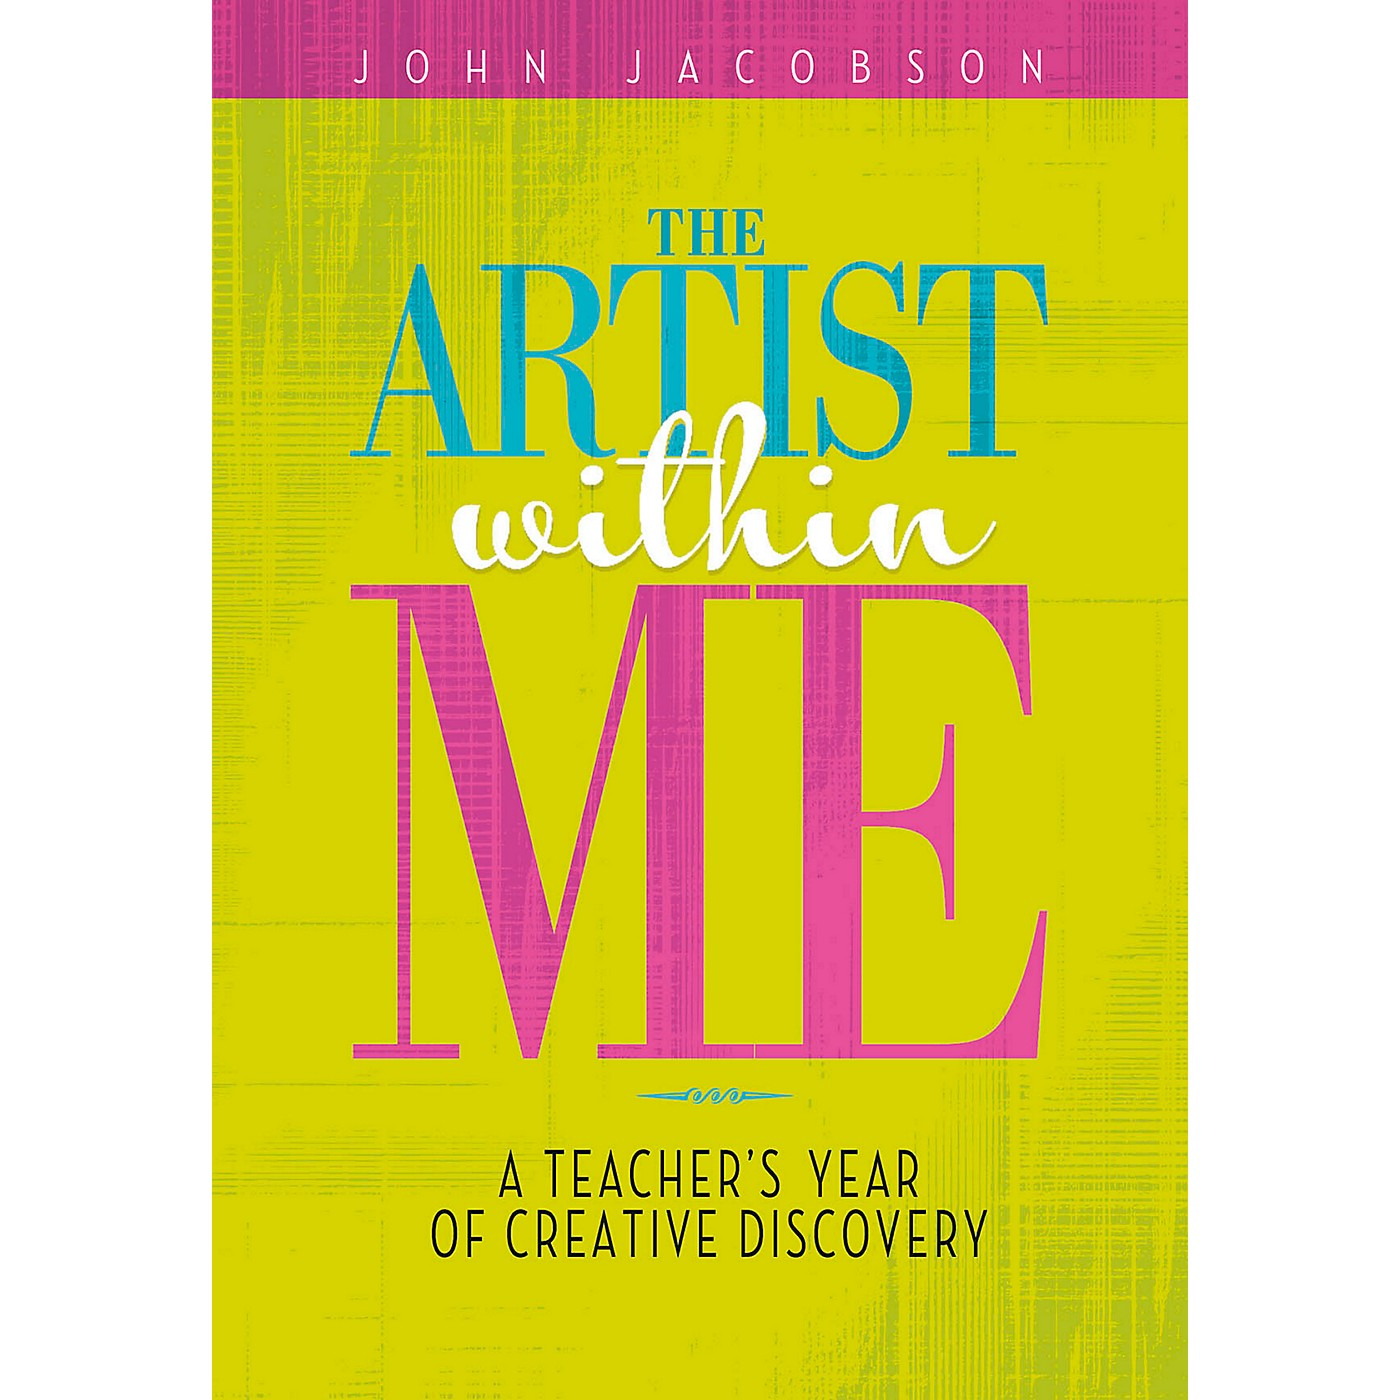 Hal Leonard The Artist Within Me - A Teacher's Year of Creative Rediscovery thumbnail